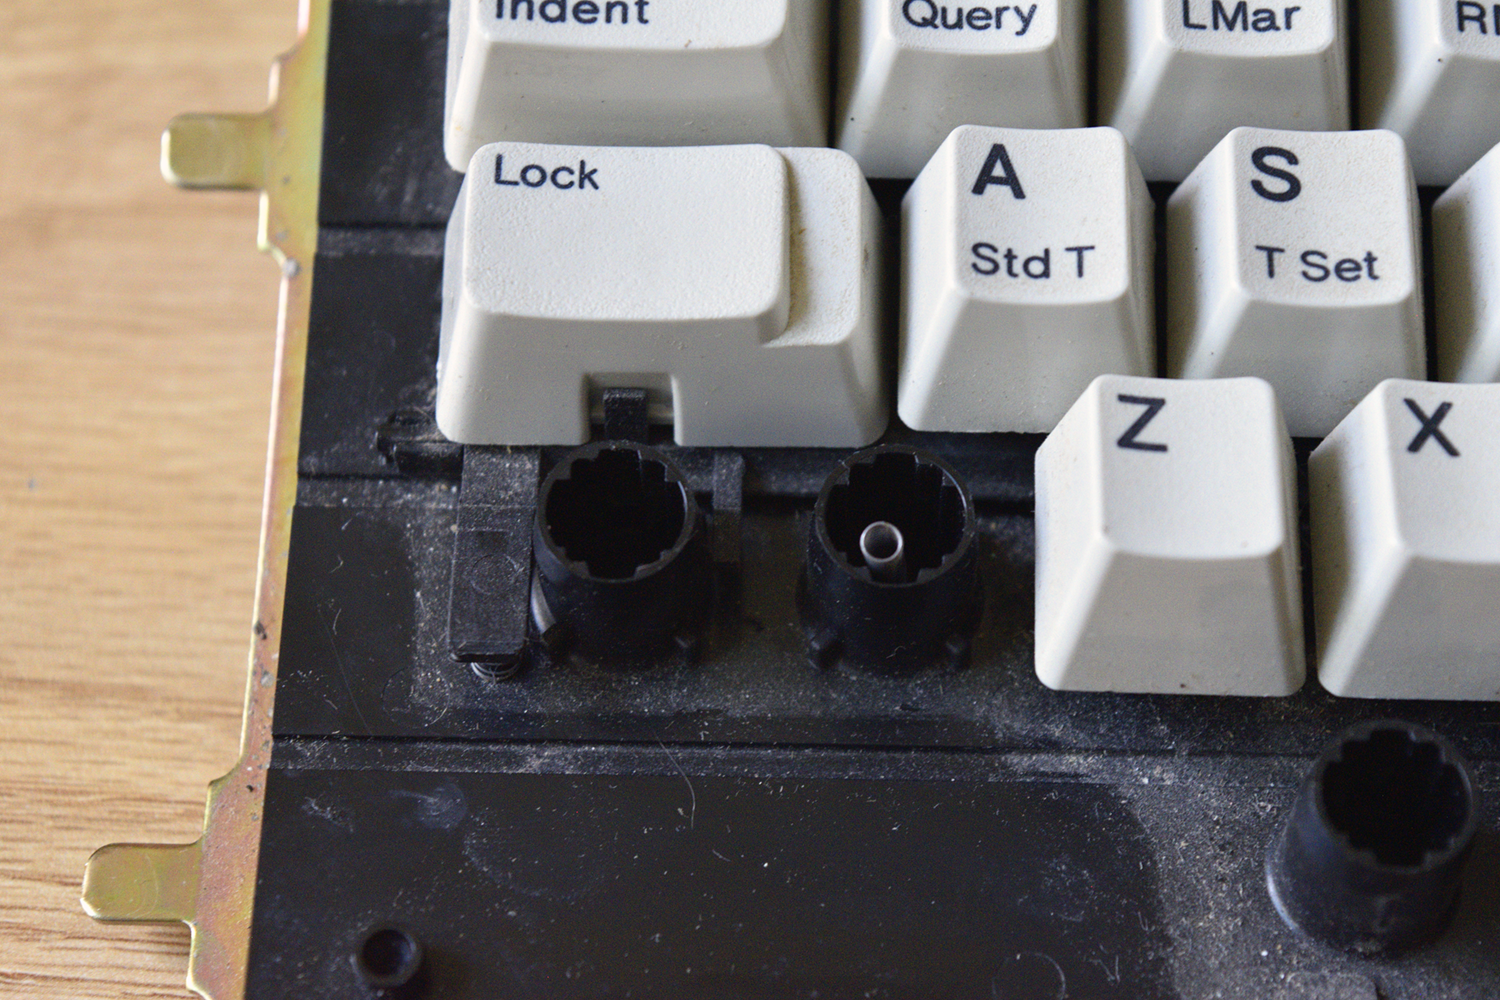 IBM 95 -- Latching Caps Lock key